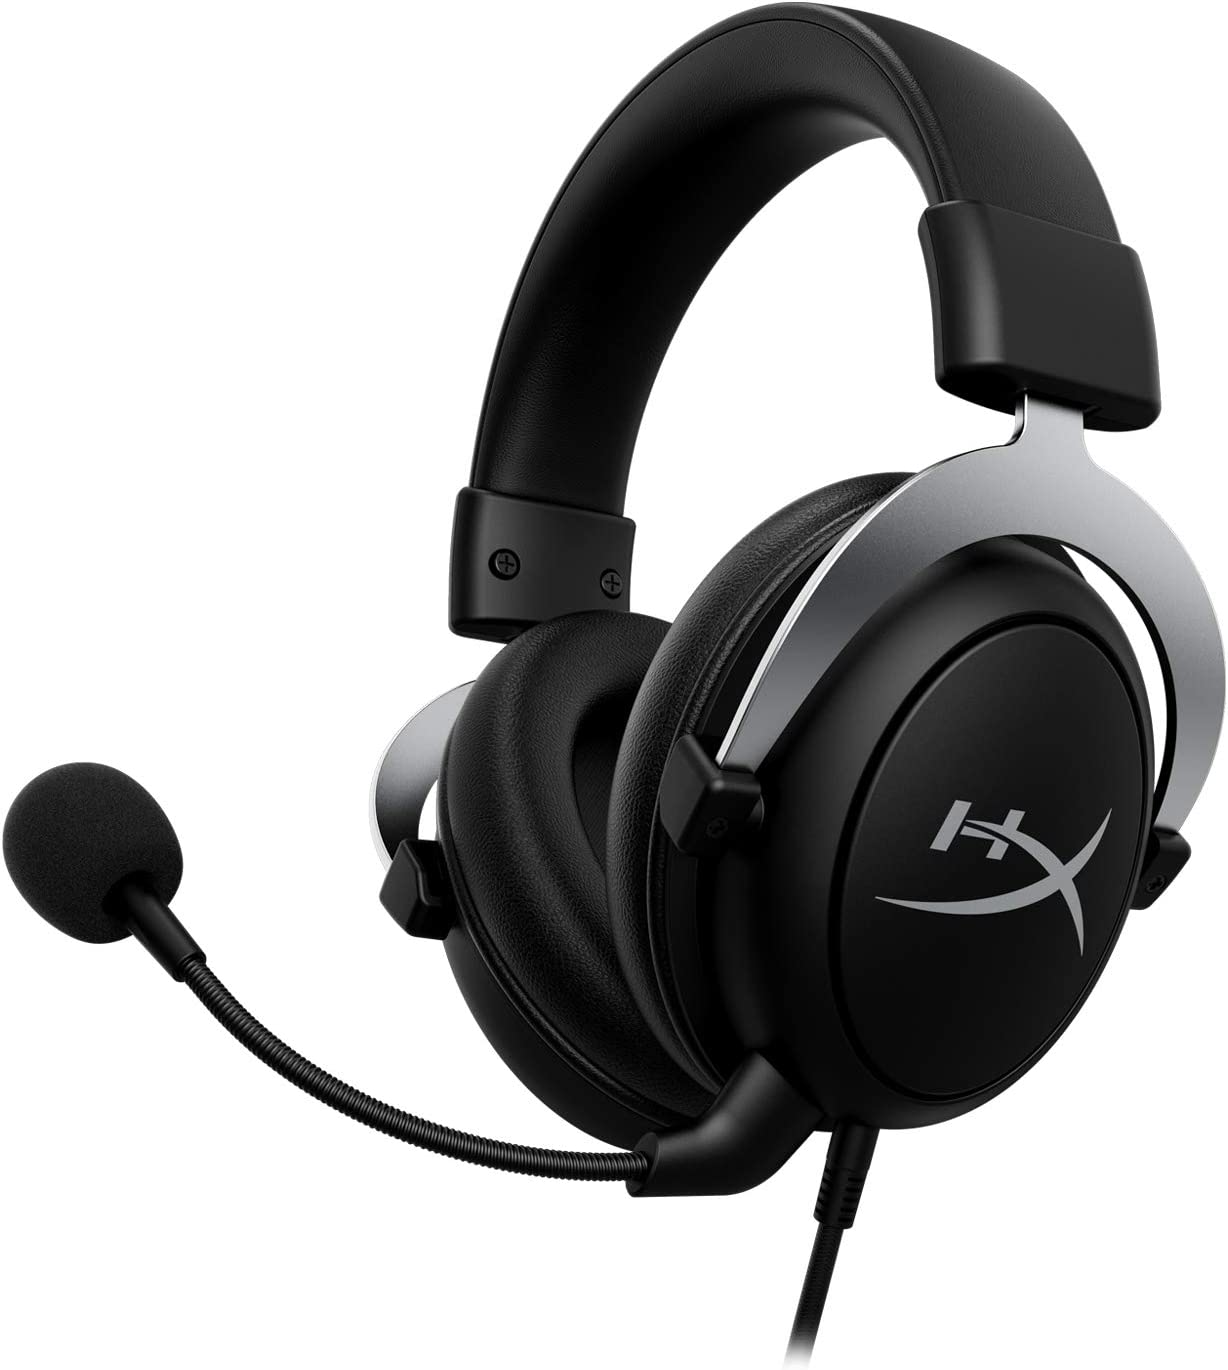 HyperX CloudX, Official Xbox Licensed Gaming Headset, Compatible with Xbox One and Xbox Series X S, Memory Foam Ear Cushions, Detachable Noise-Cancelling Mic, in-line Audio Controls, Silver